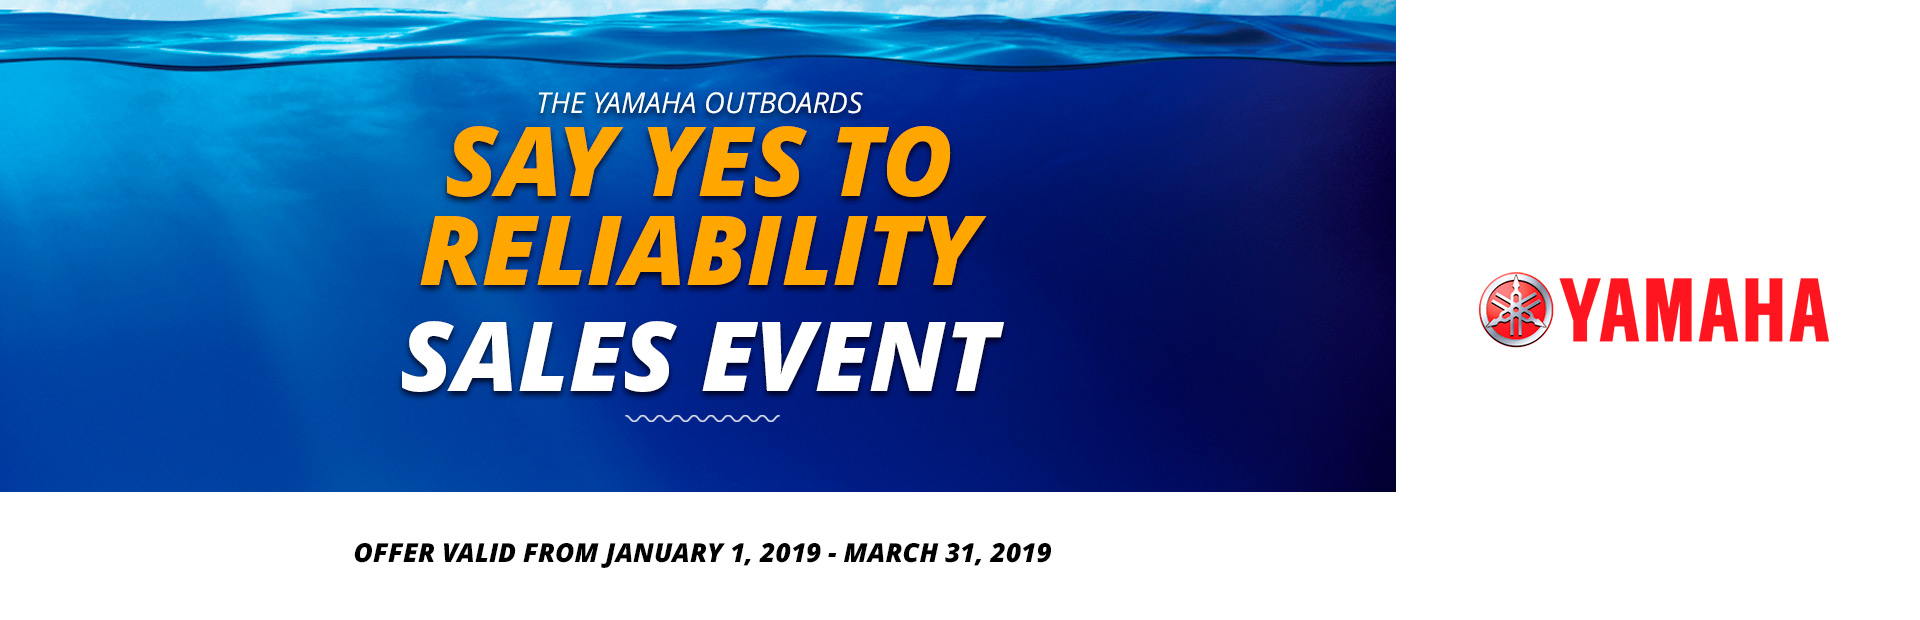 Yamaha: Say Yes To Reliability Sales Event